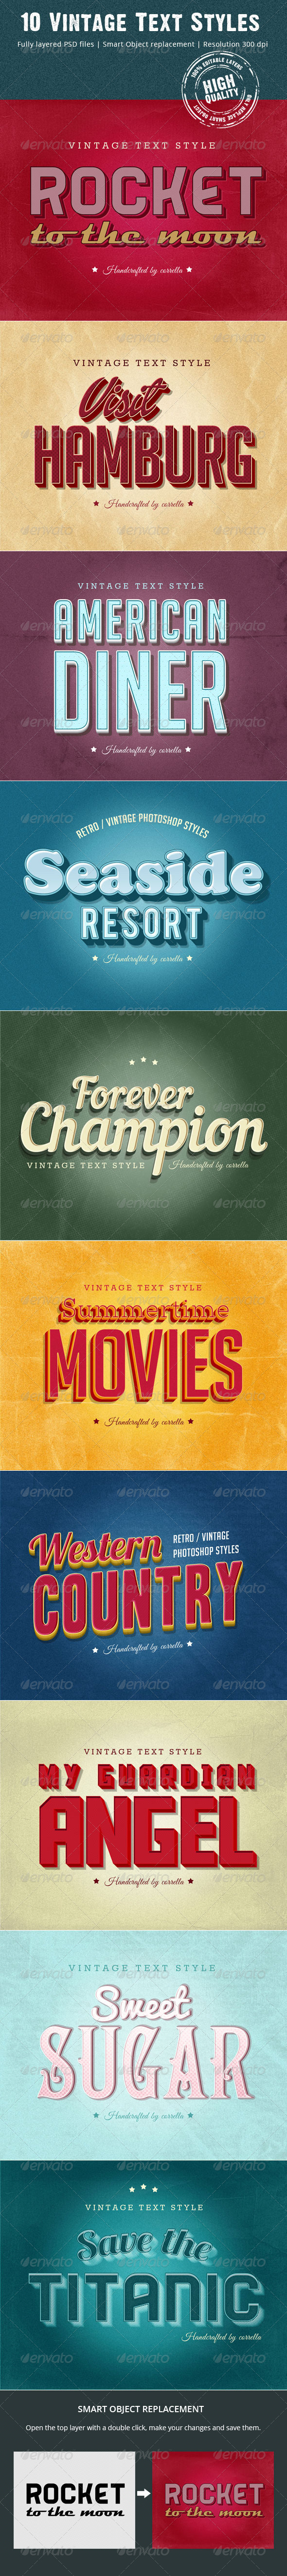 GraphicRiver 10 Vintage Text Styles 8156623